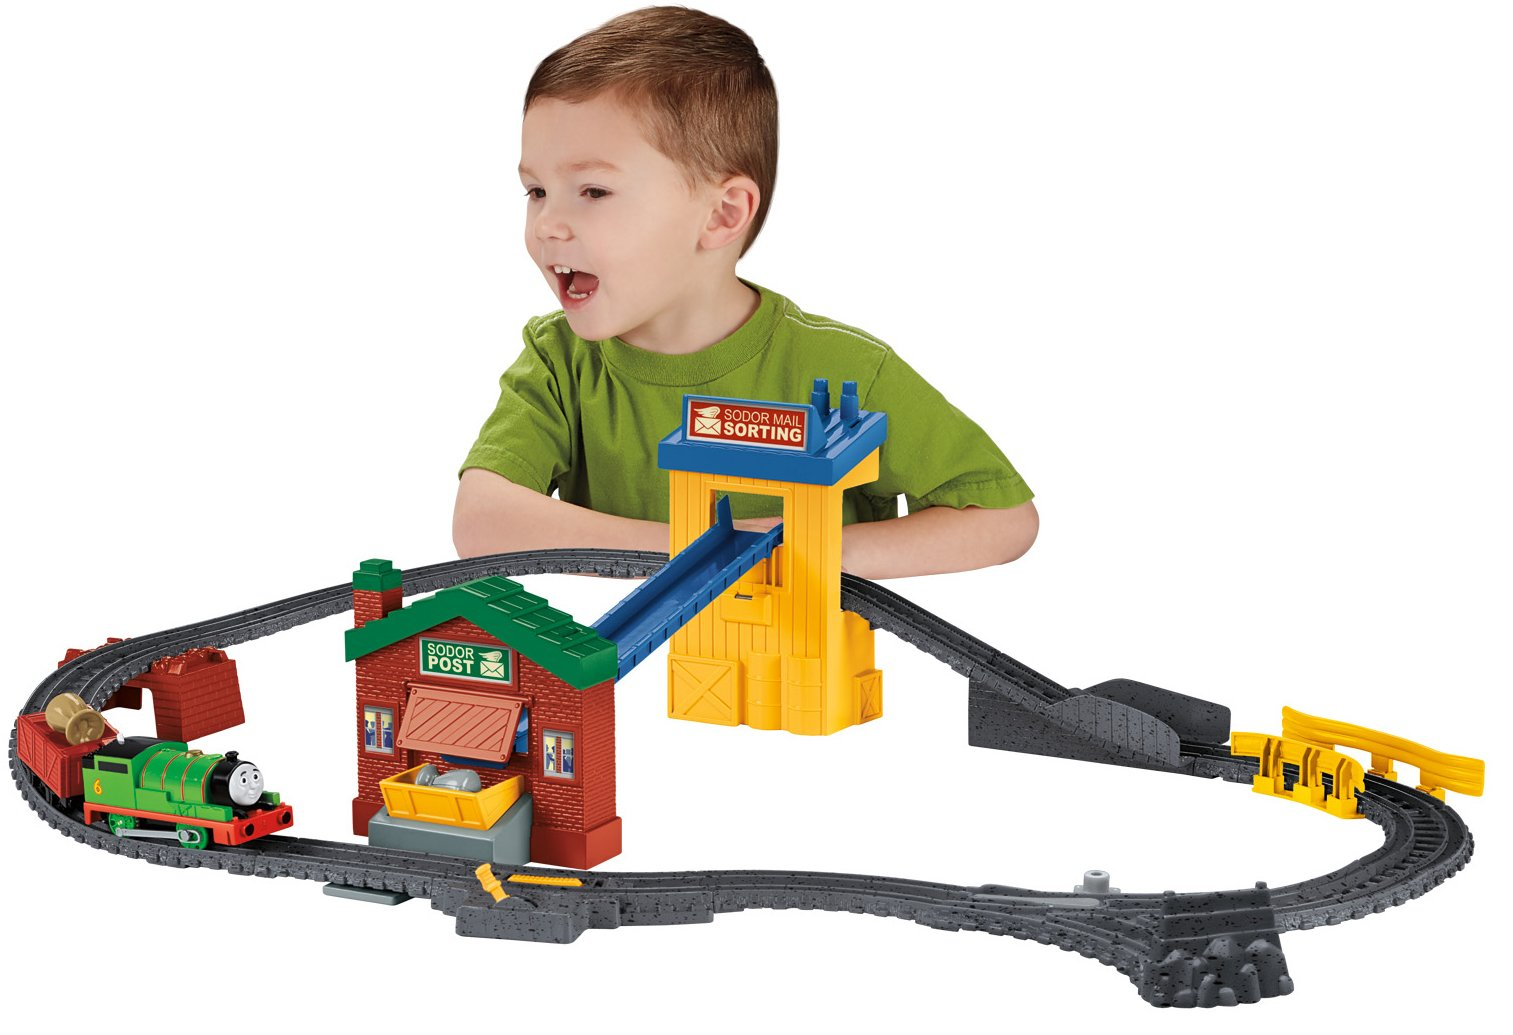 Thomas & Friends Fisher-Price TrackMaster, Sort & Switch Delivery Set